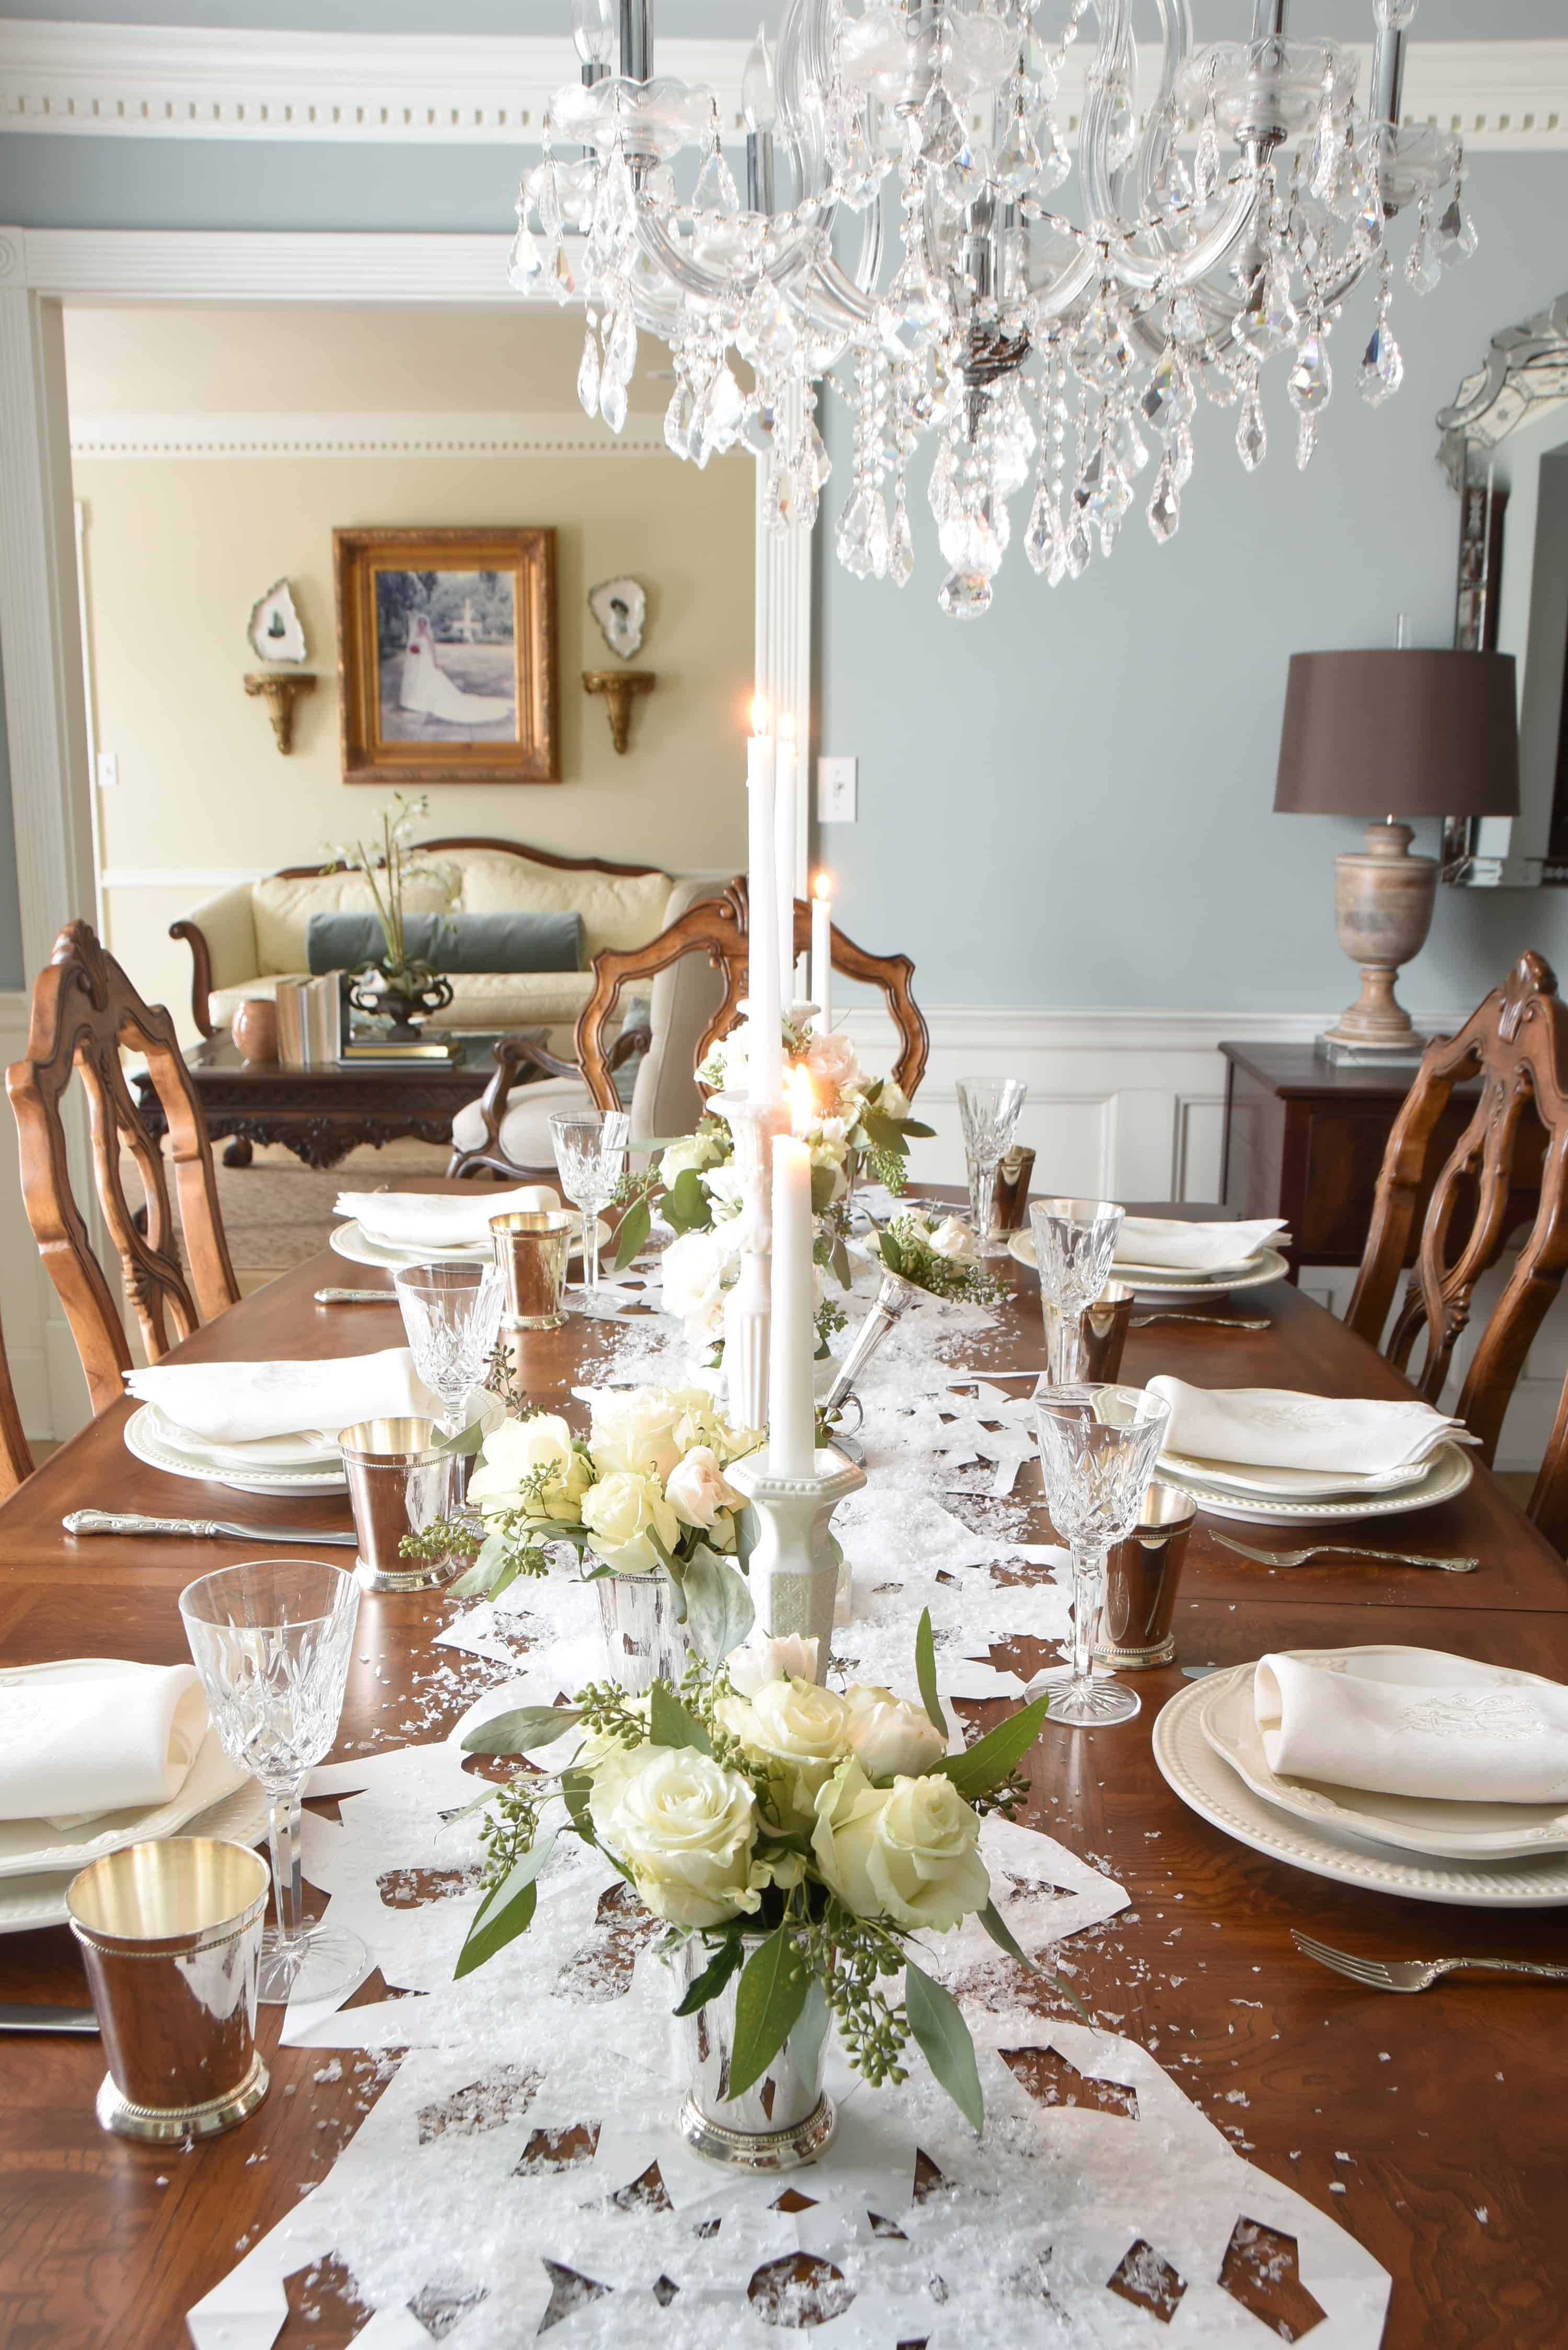 A Snowy Formal Dining Table Formal Dining Tables Formal Table